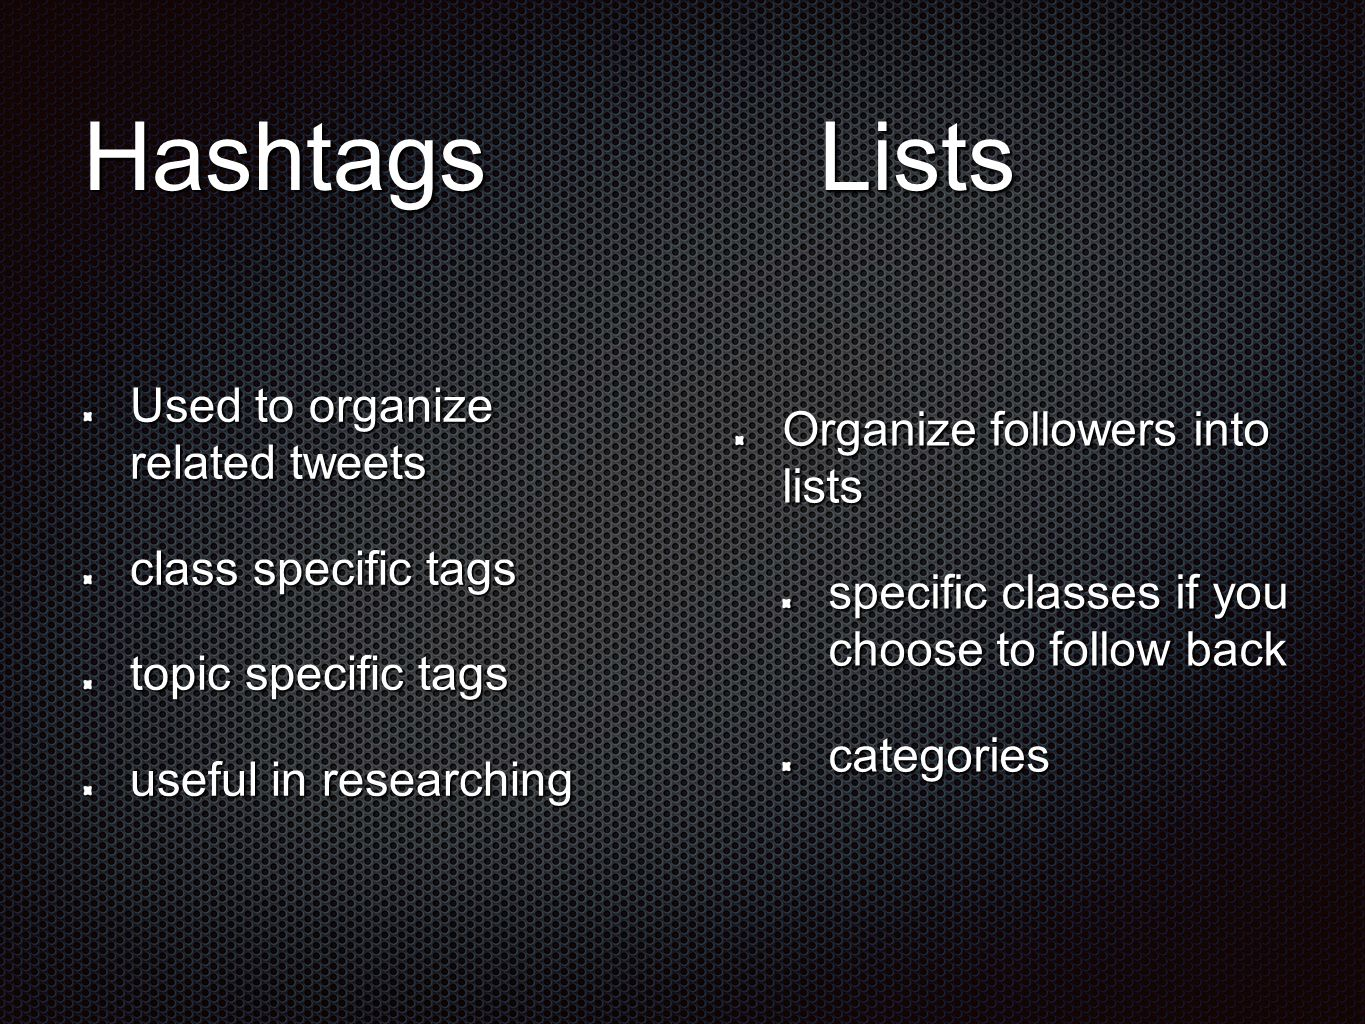 HashtagsLists Used to organize related tweets class specific tags topic specific tags useful in researching Organize followers into lists specific cla